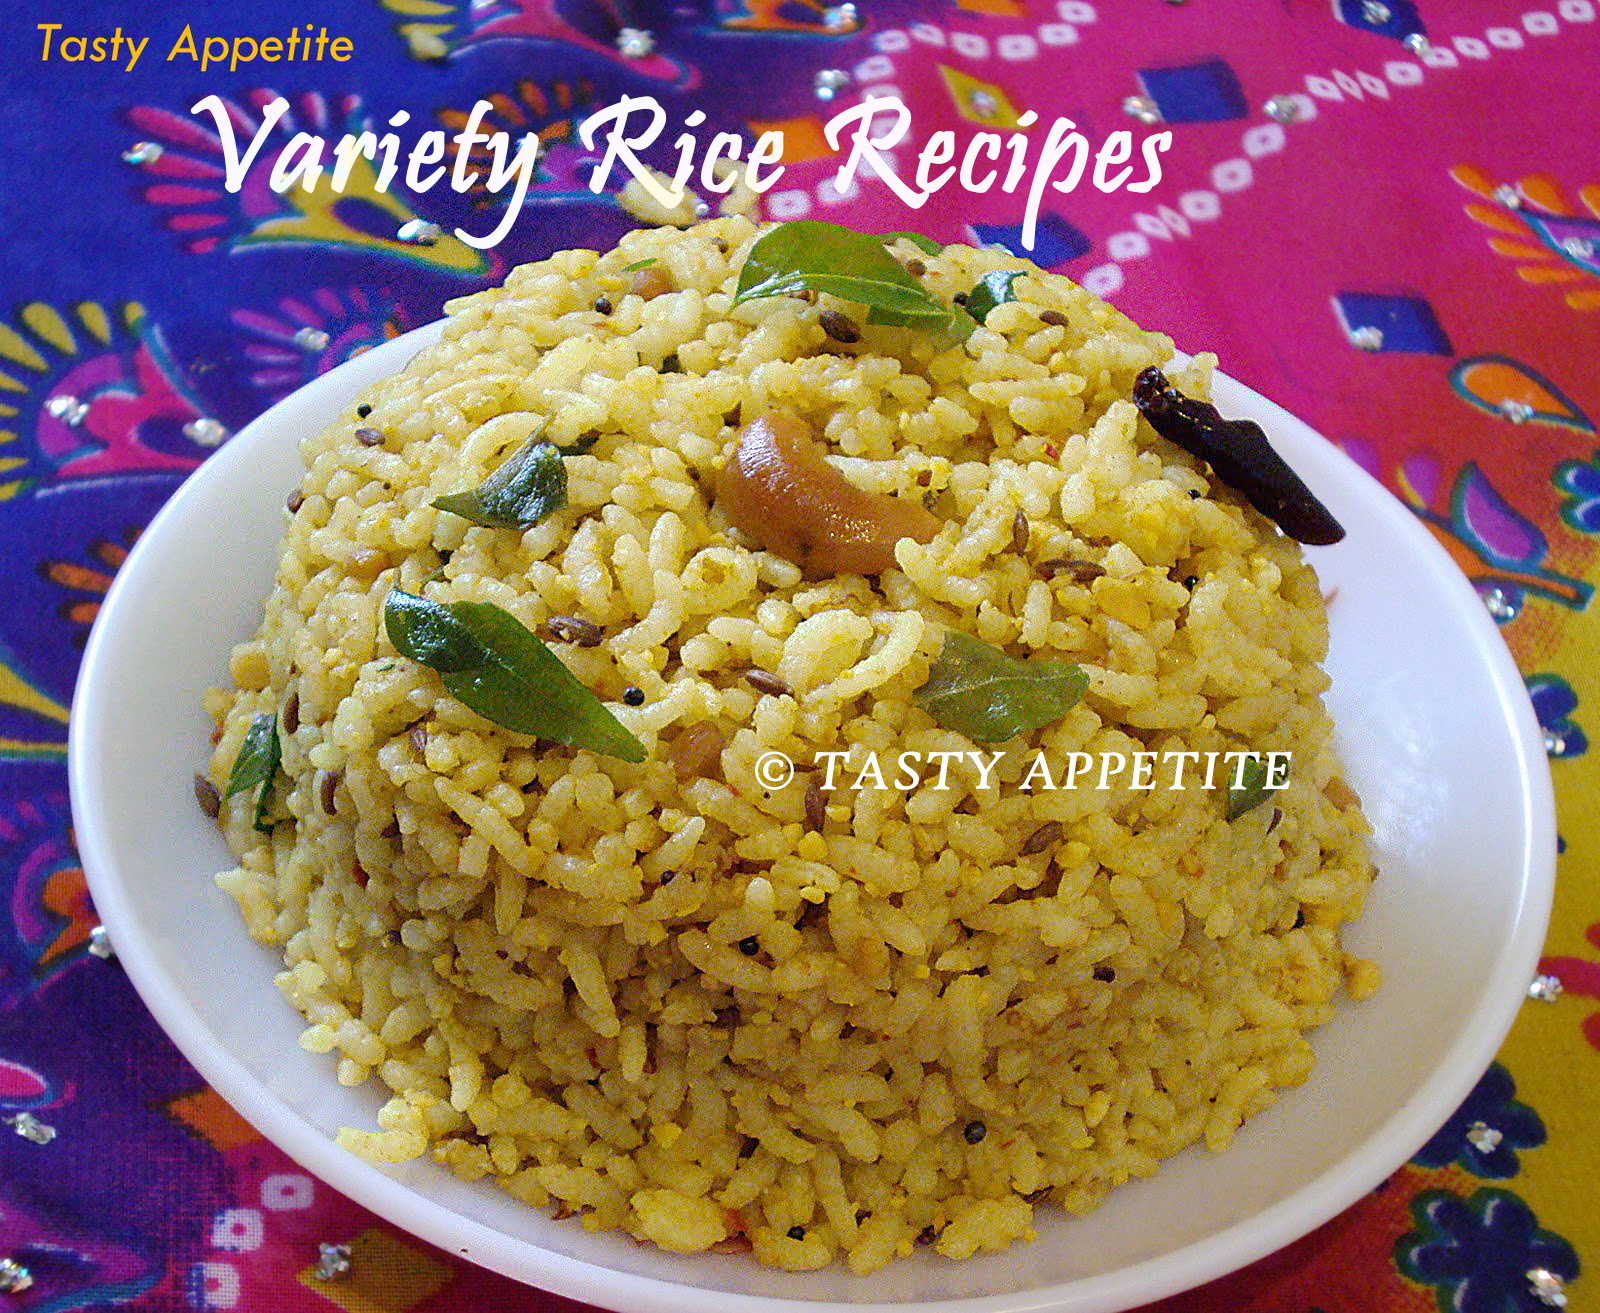 South indian variety rice recipes healthy lunch box recipes kids south indian variety rice recipes healthy lunch box recipes kids healthy lunch forumfinder Images